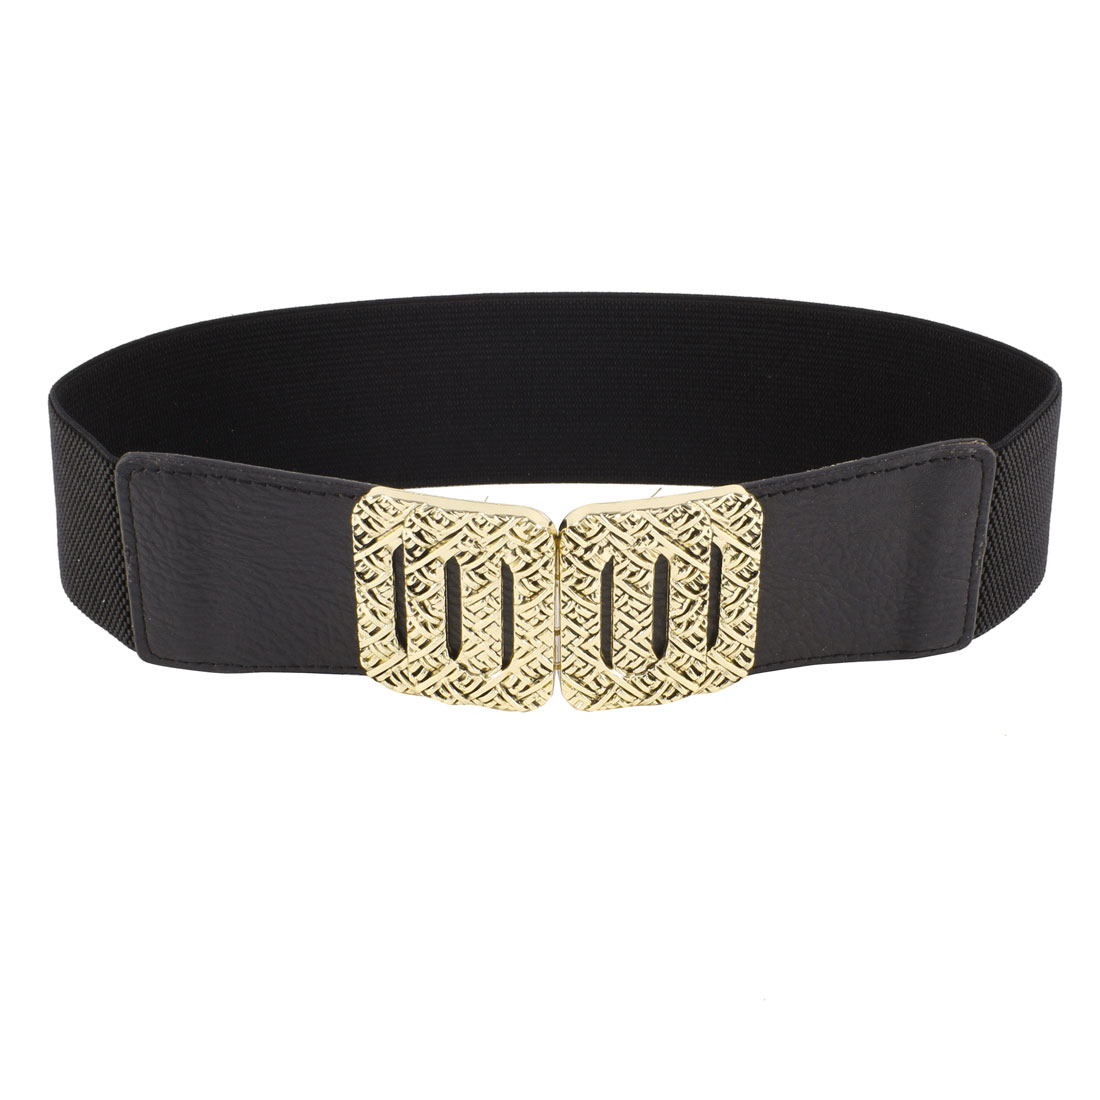 Rectangle Interlock Closure Textured Waistband Cinch Waist Belt Black for Lady